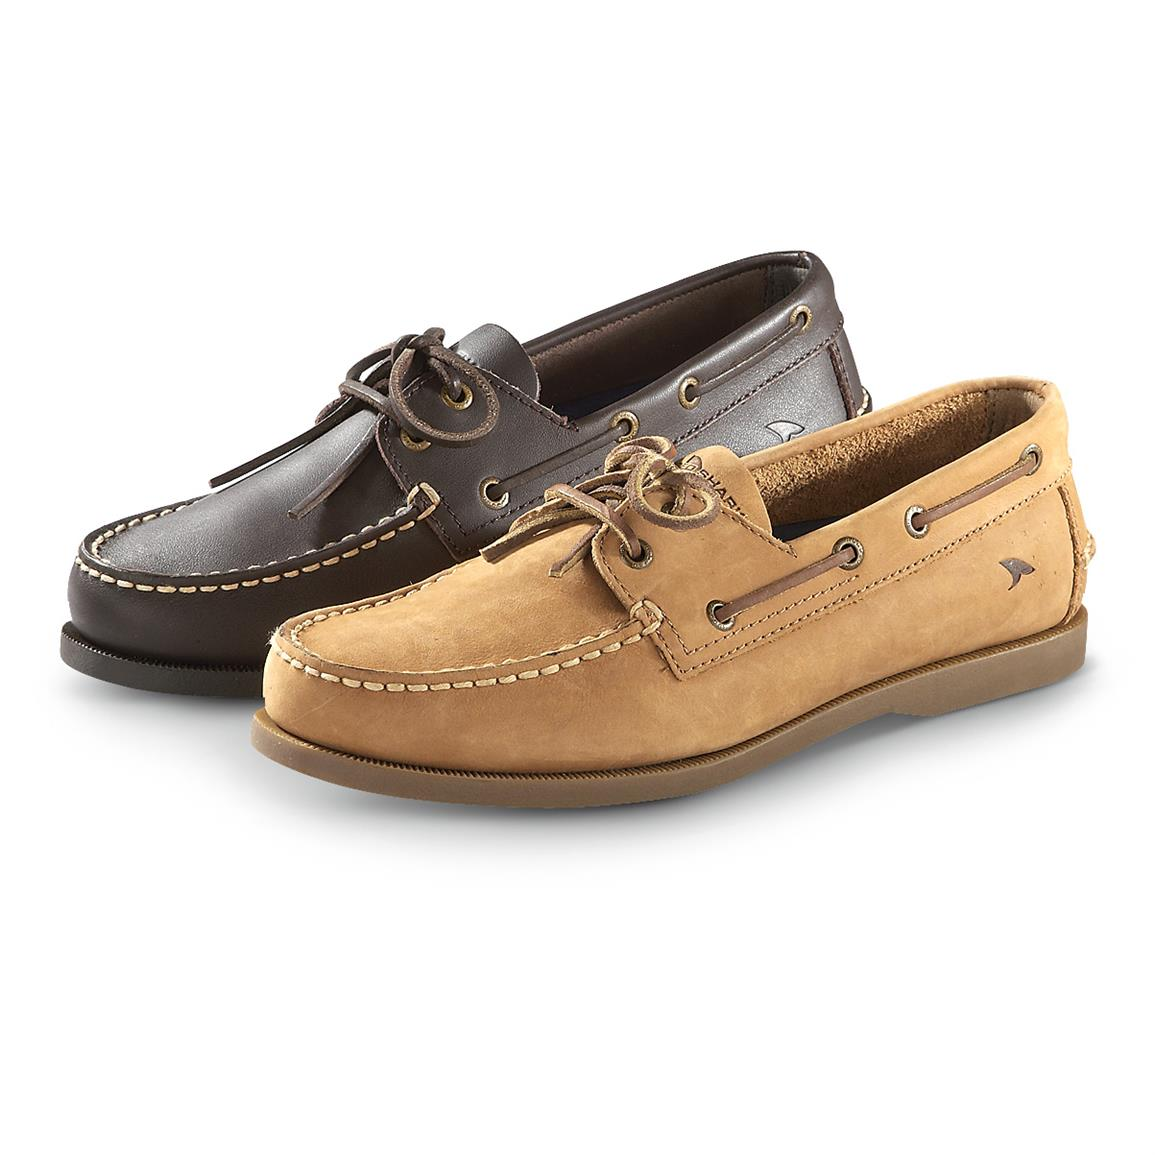 Men's Rugged Shark Classic Boat Shoes • Chocolate or Tan